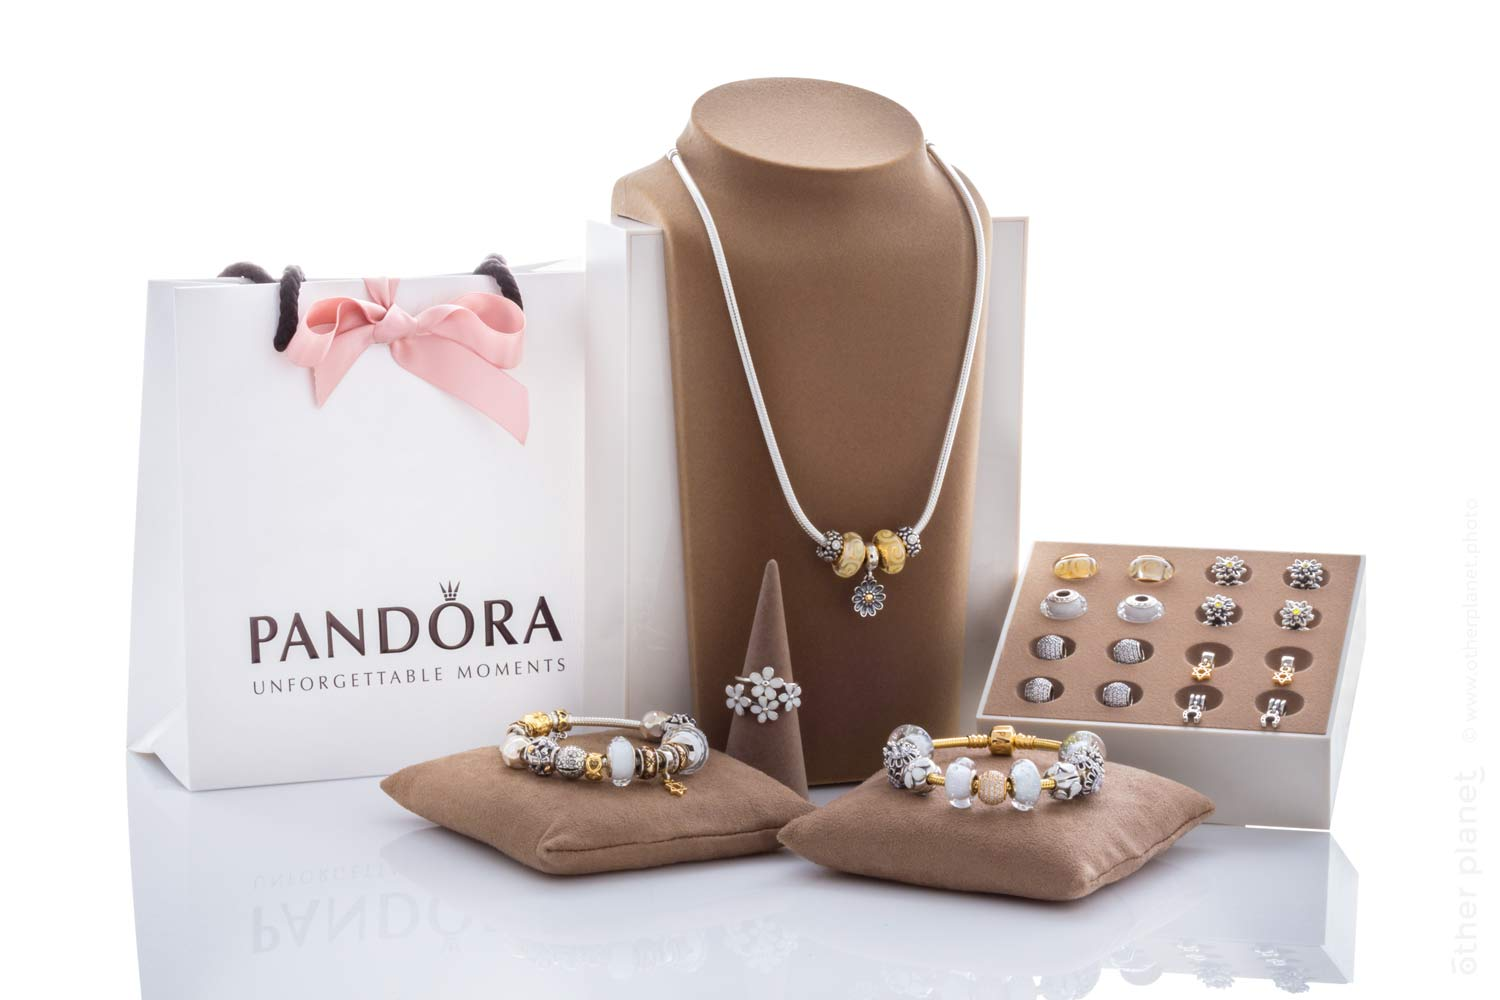 Pandora jewelry arrangement